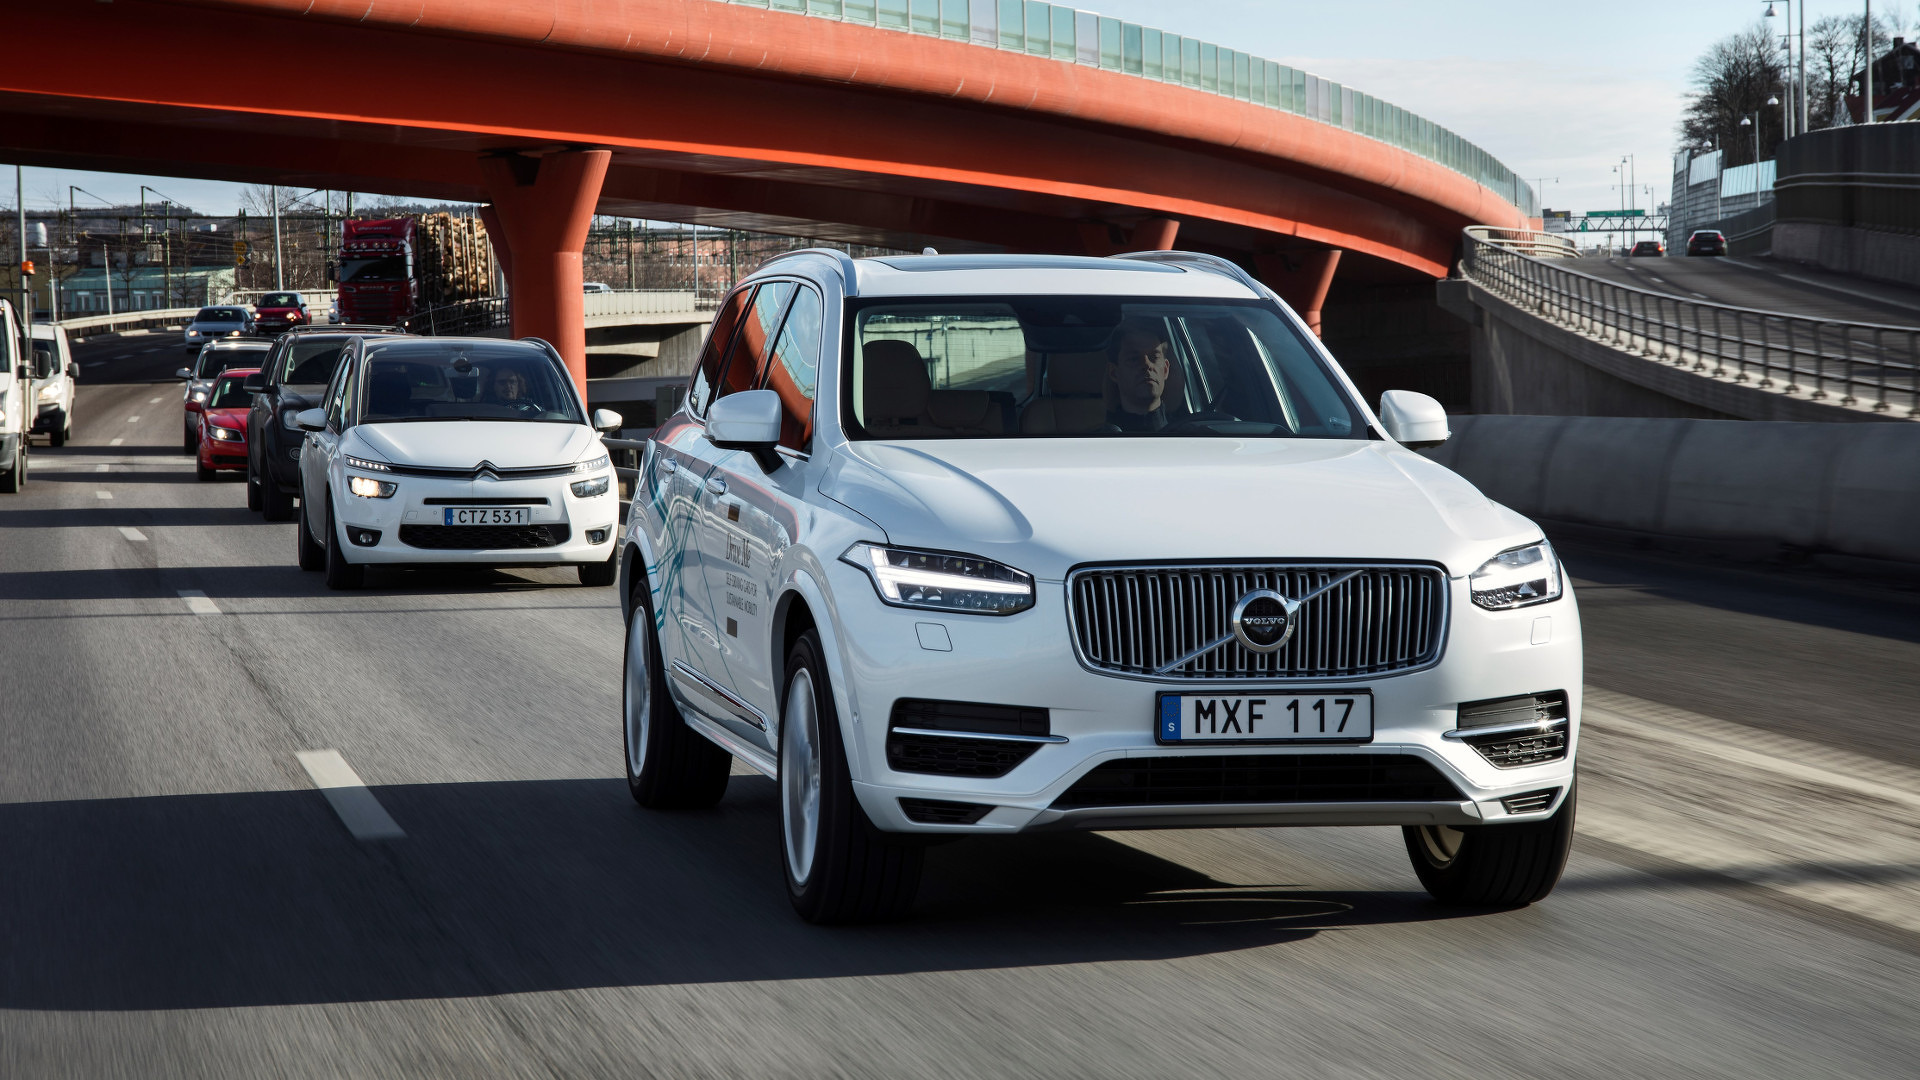 Volvo to give 100 autonomous cars to UK families for driving trial